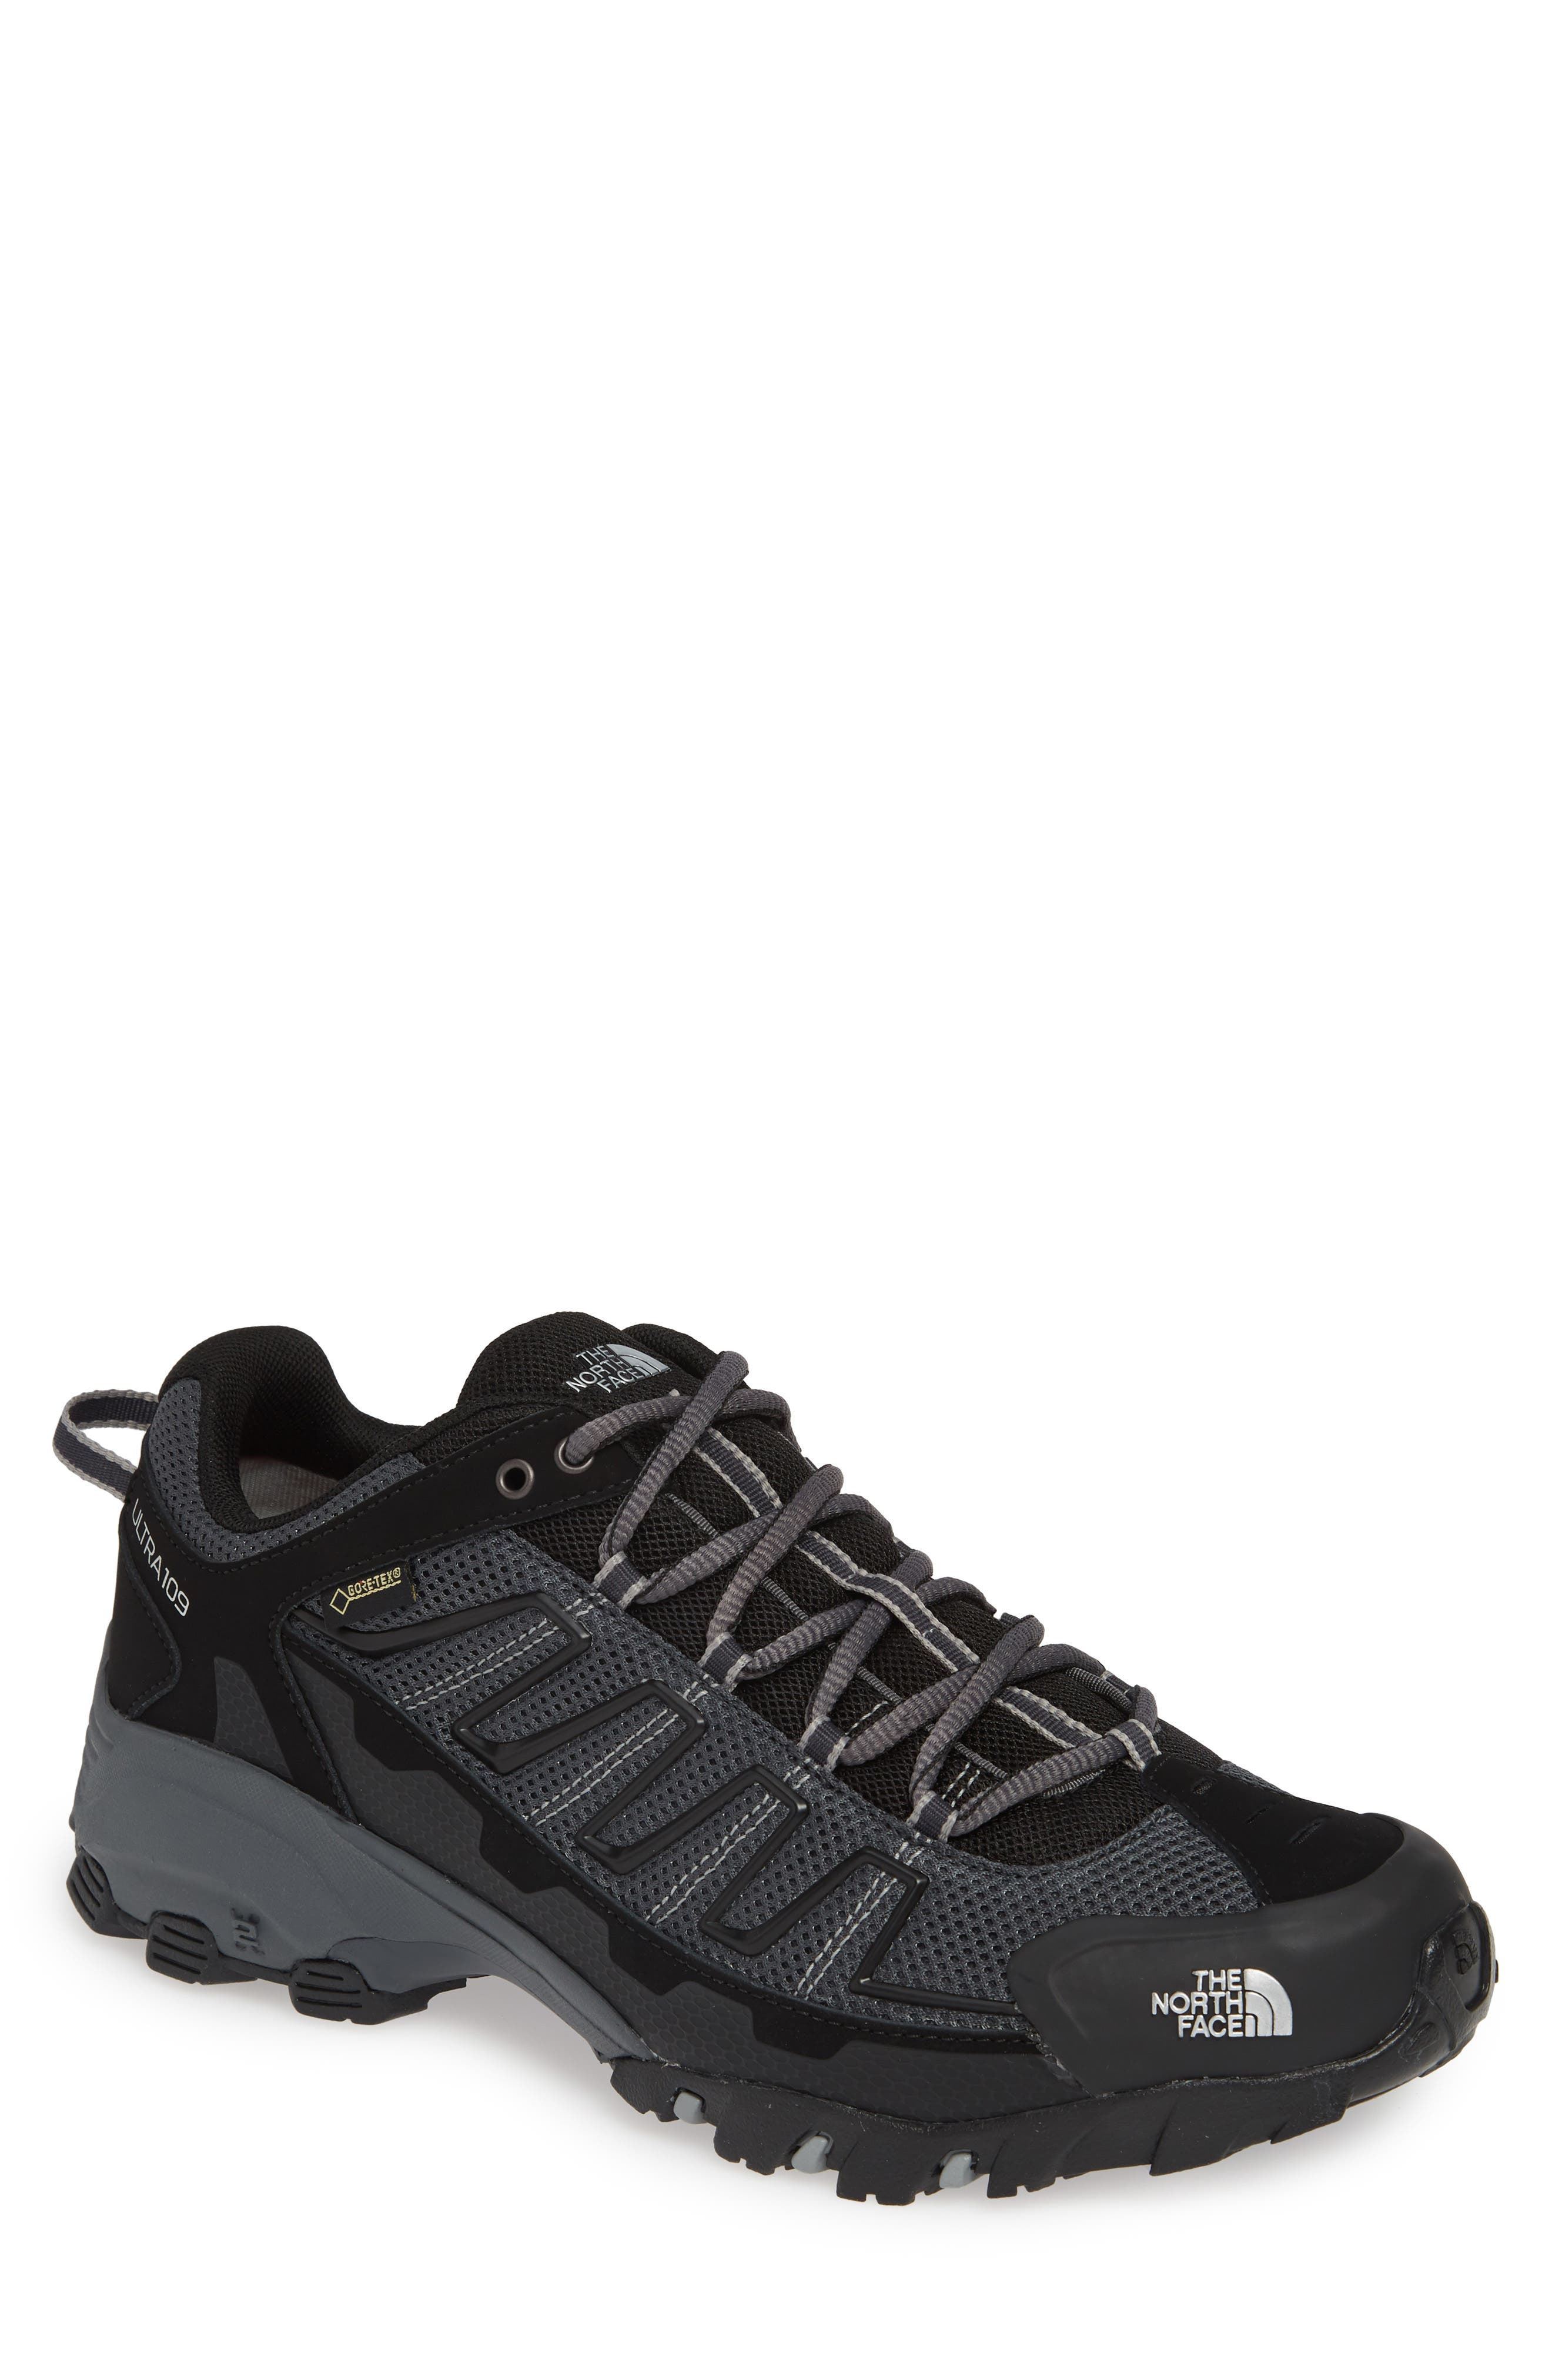 THE NORTH FACE 'Ultra 109 GTX' Waterproof Running Shoe, Main, color, BLACK/ GREY